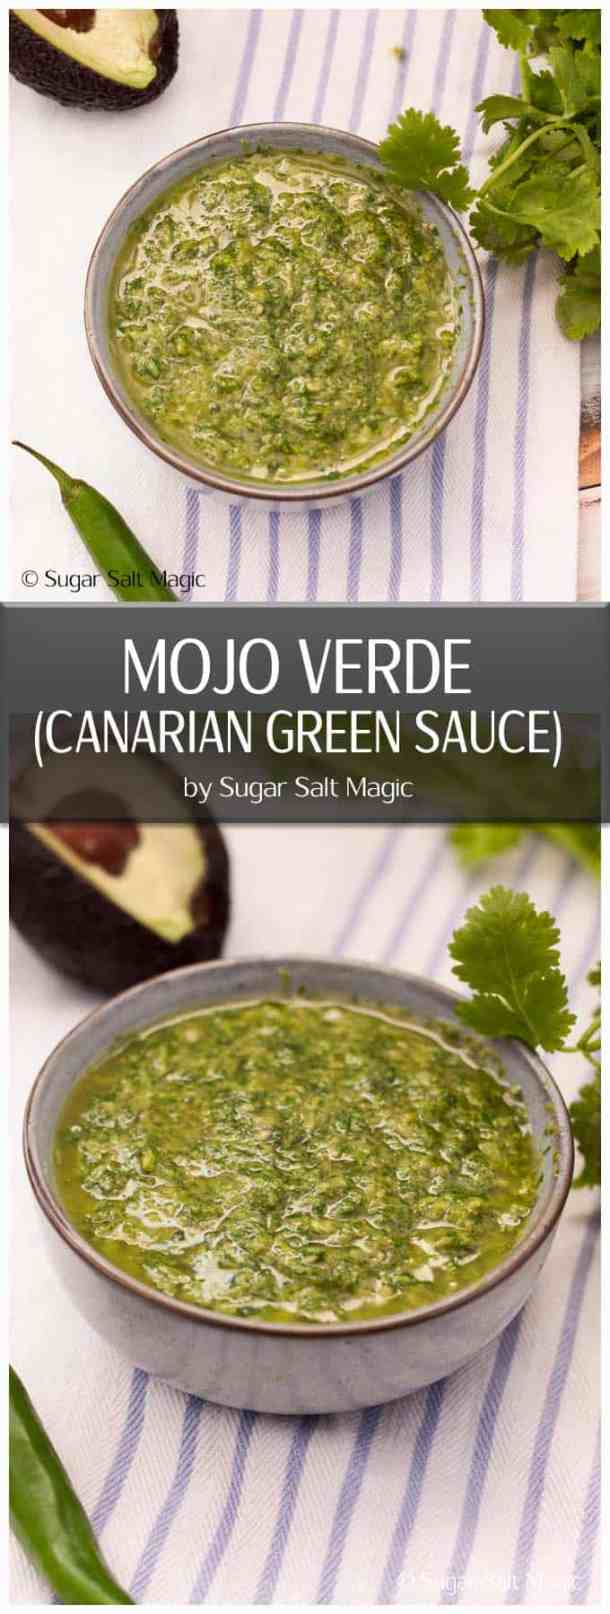 Mojo Verde is a punchy, herb sauce perfect for fish, meat and potatoes.  #herbsauce #mojoverde